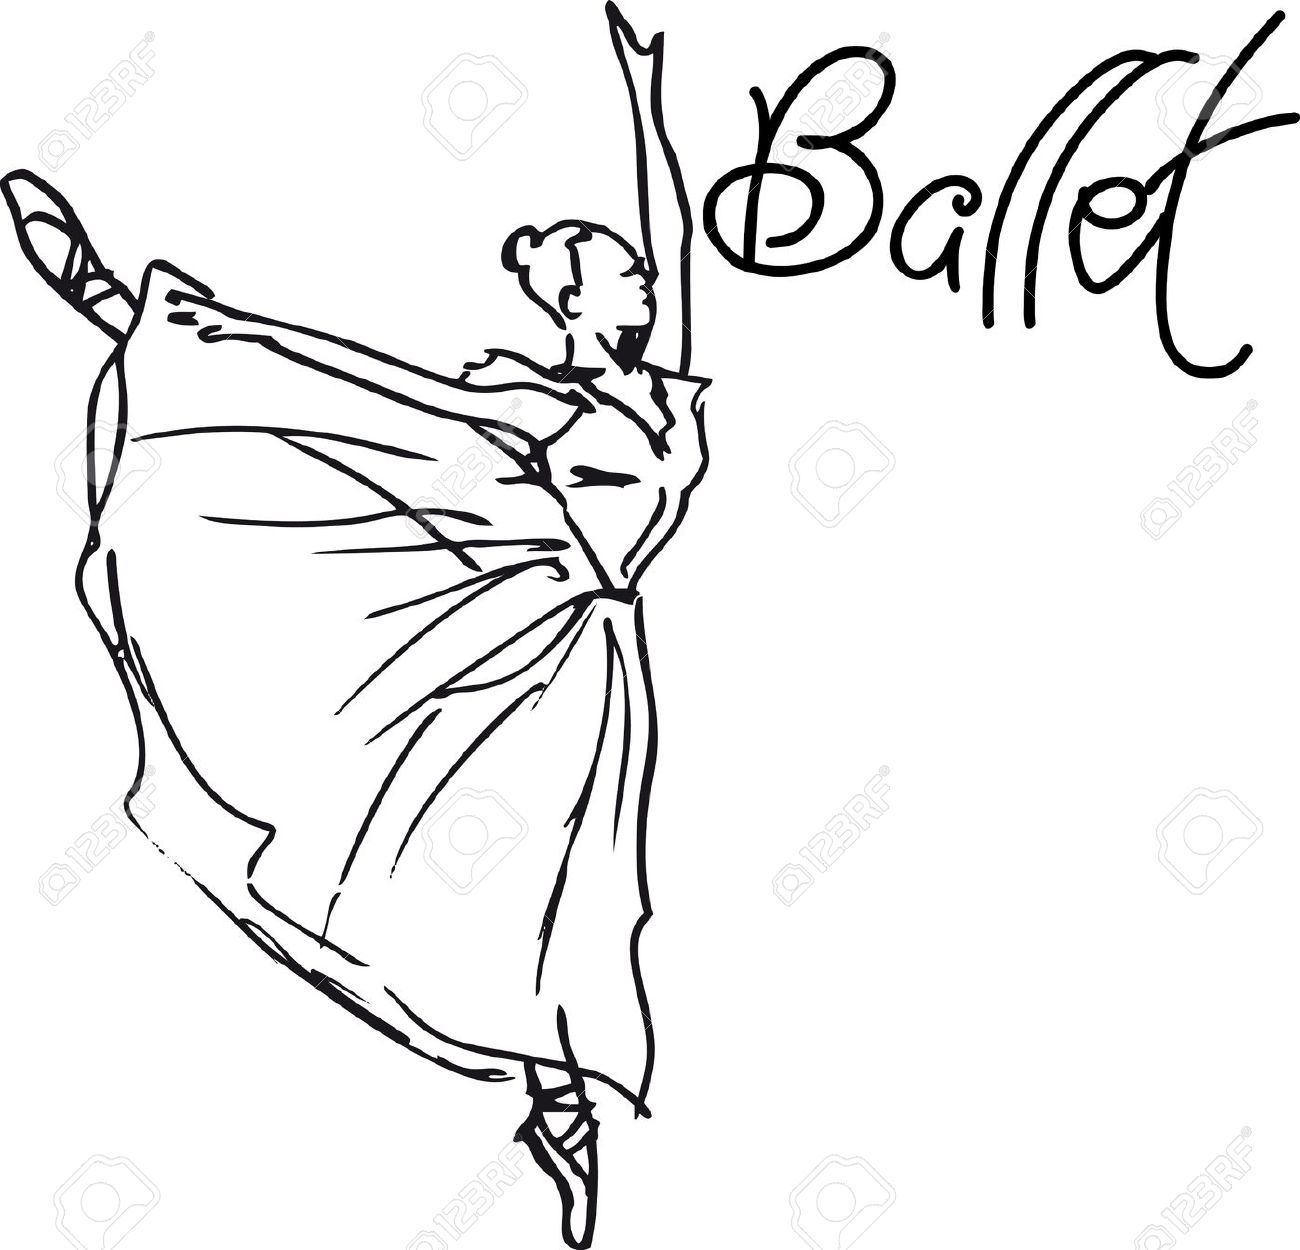 1300x1250 Ballerina Clipart Line Drawing